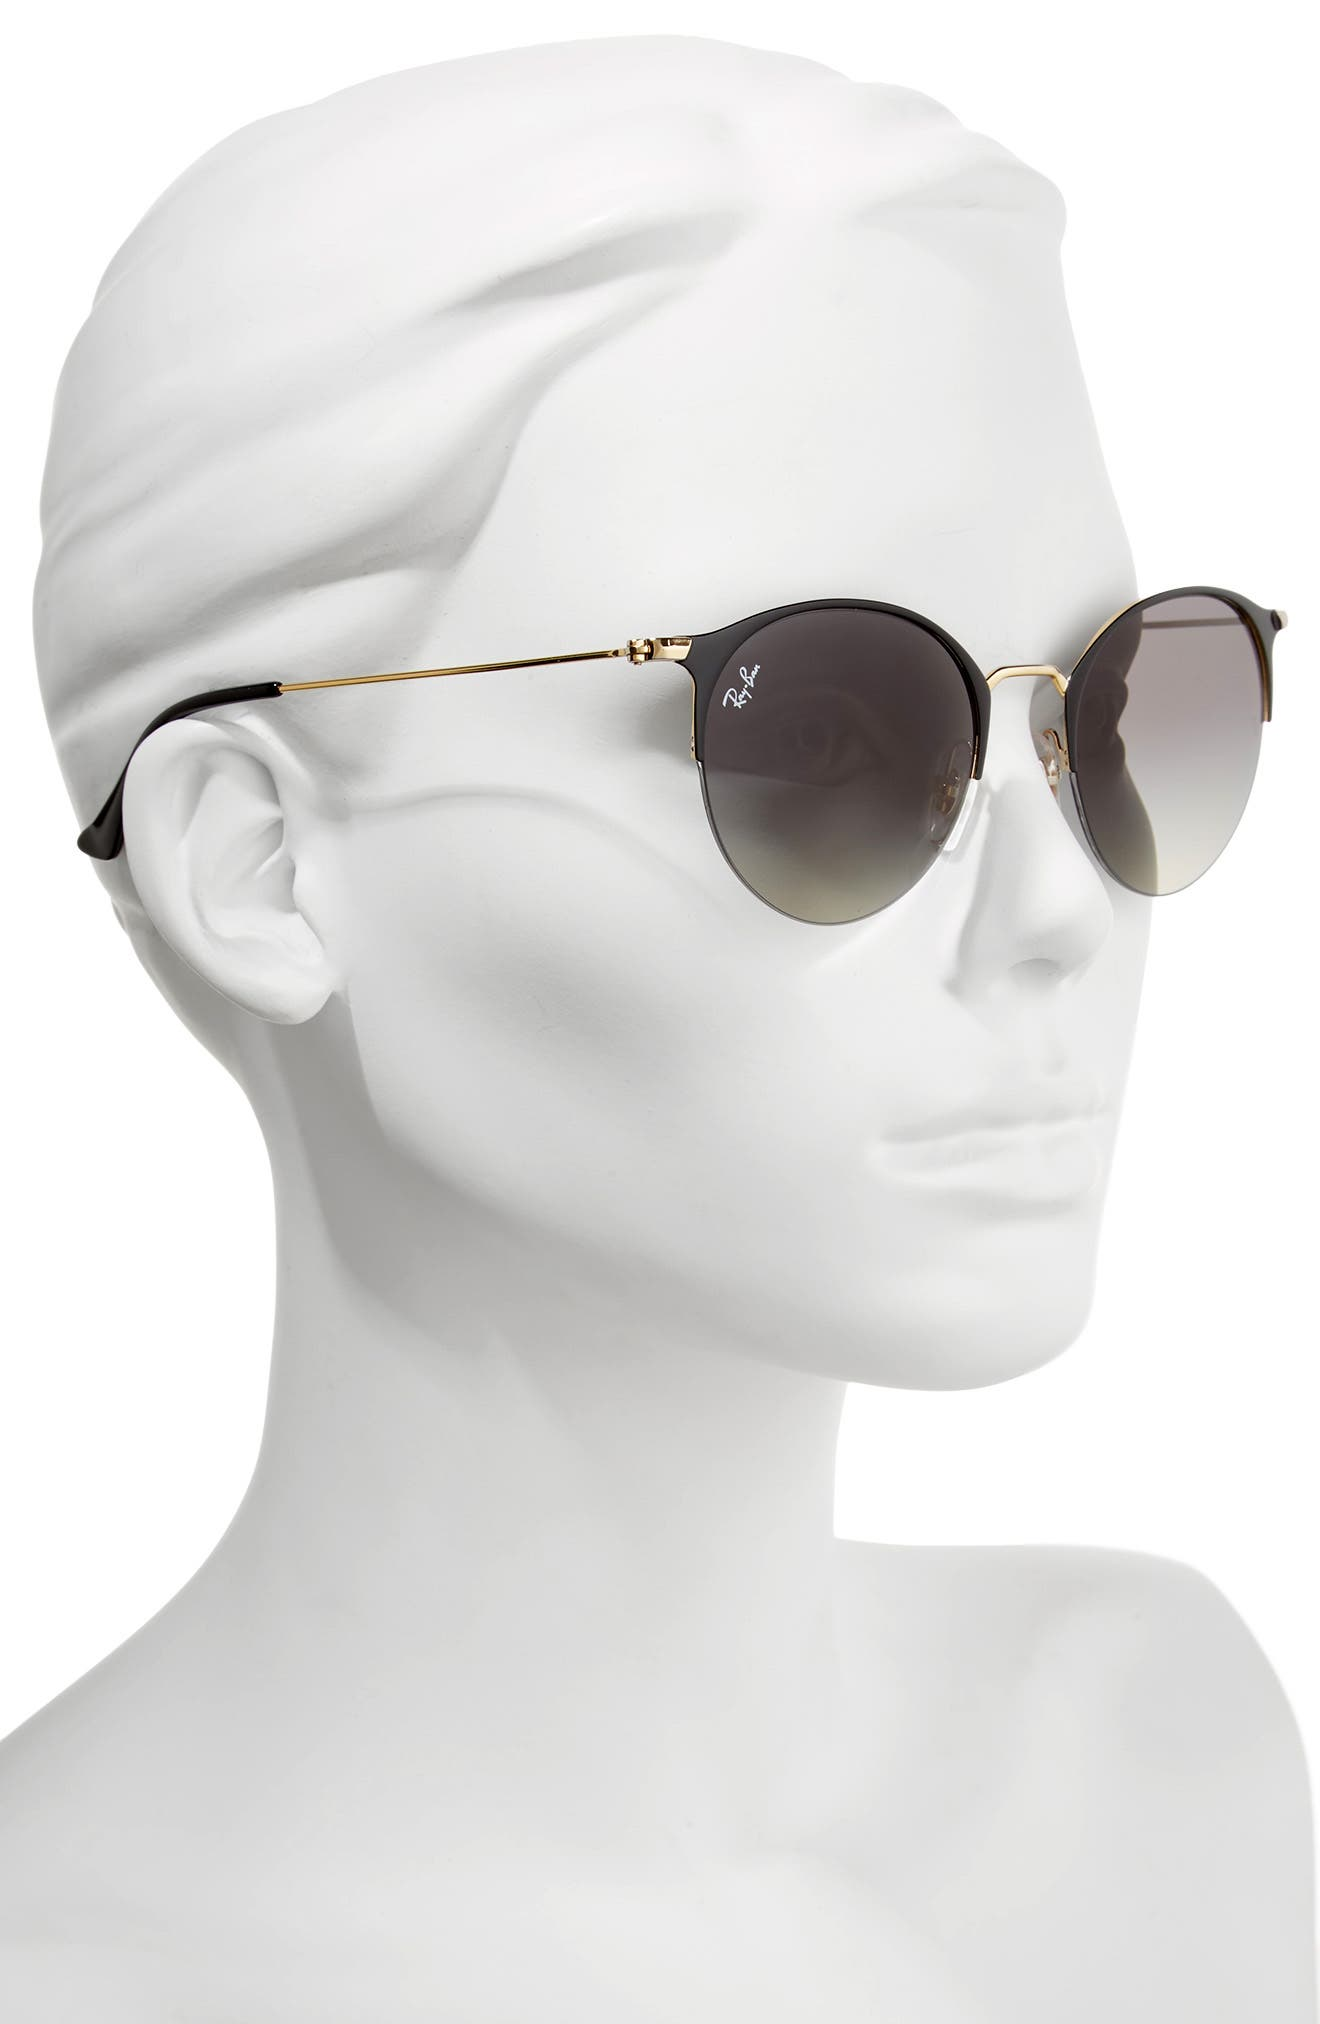 50mm Round Clubmaster Sunglasses,                             Alternate thumbnail 8, color,